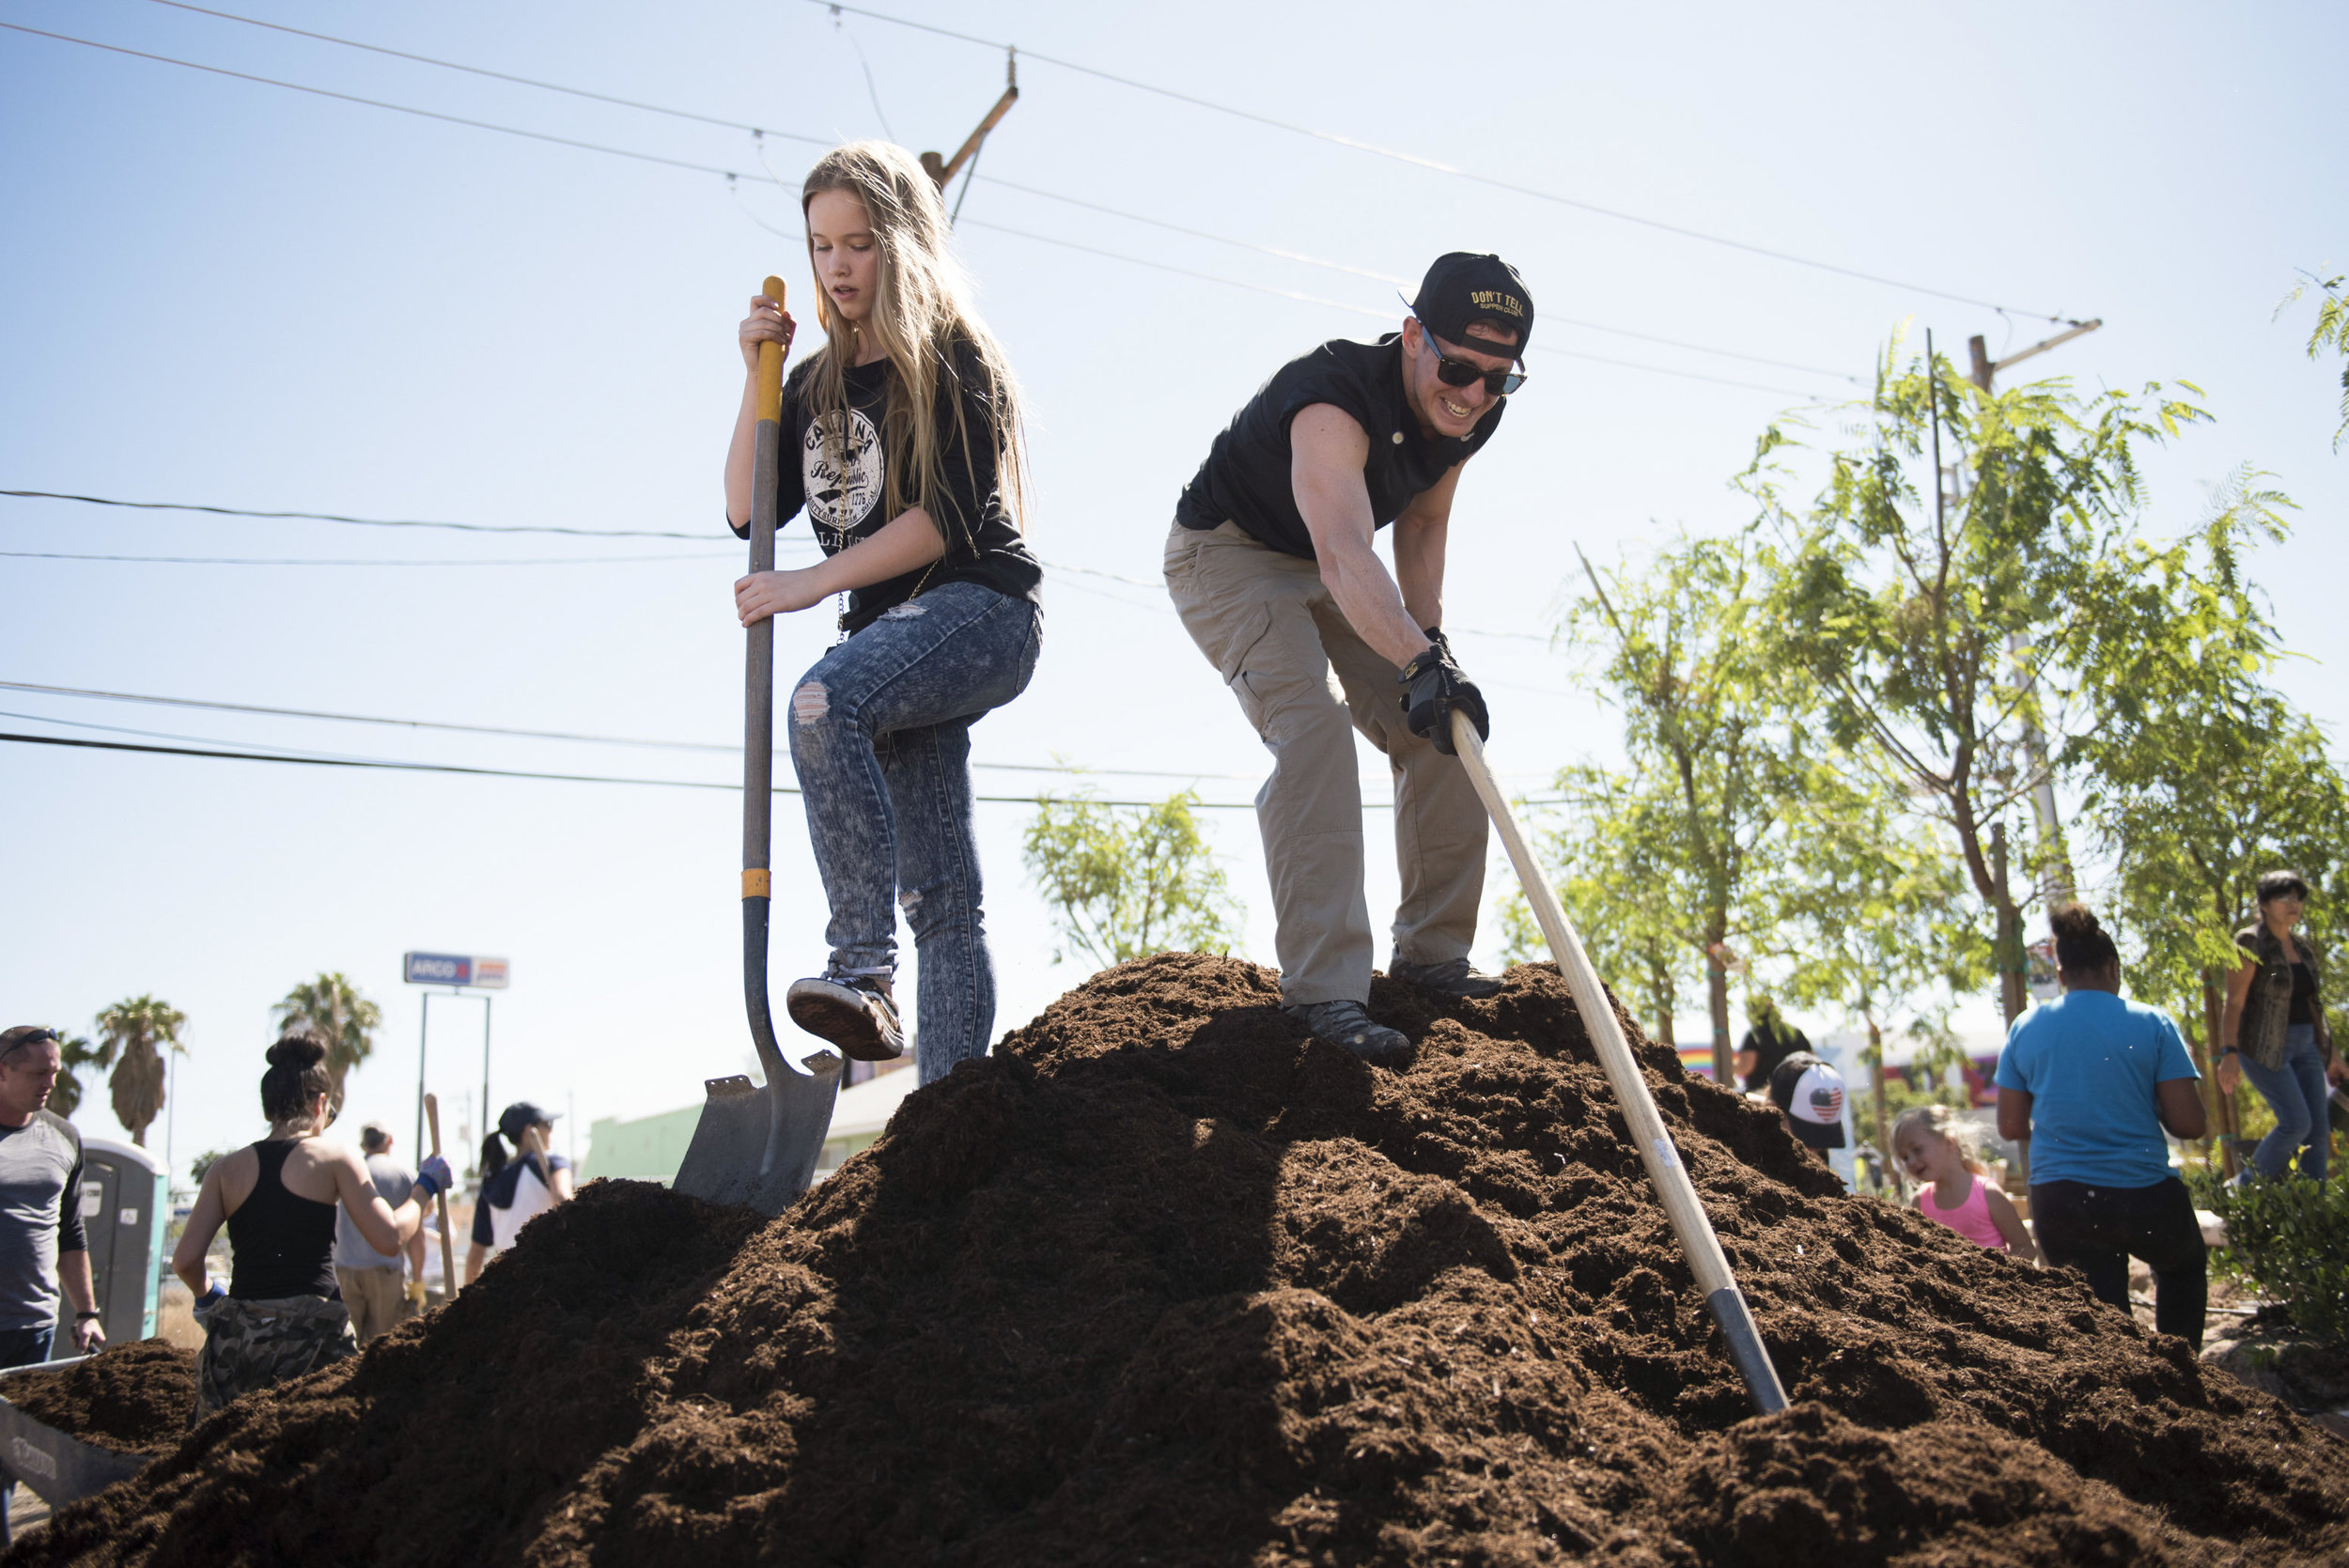 In the week following the Route 91 Harvest Country Music Festival, volunteers work on the Las Vegas Community Healing Garden in downtown Las Vegas to commemorate the victims.